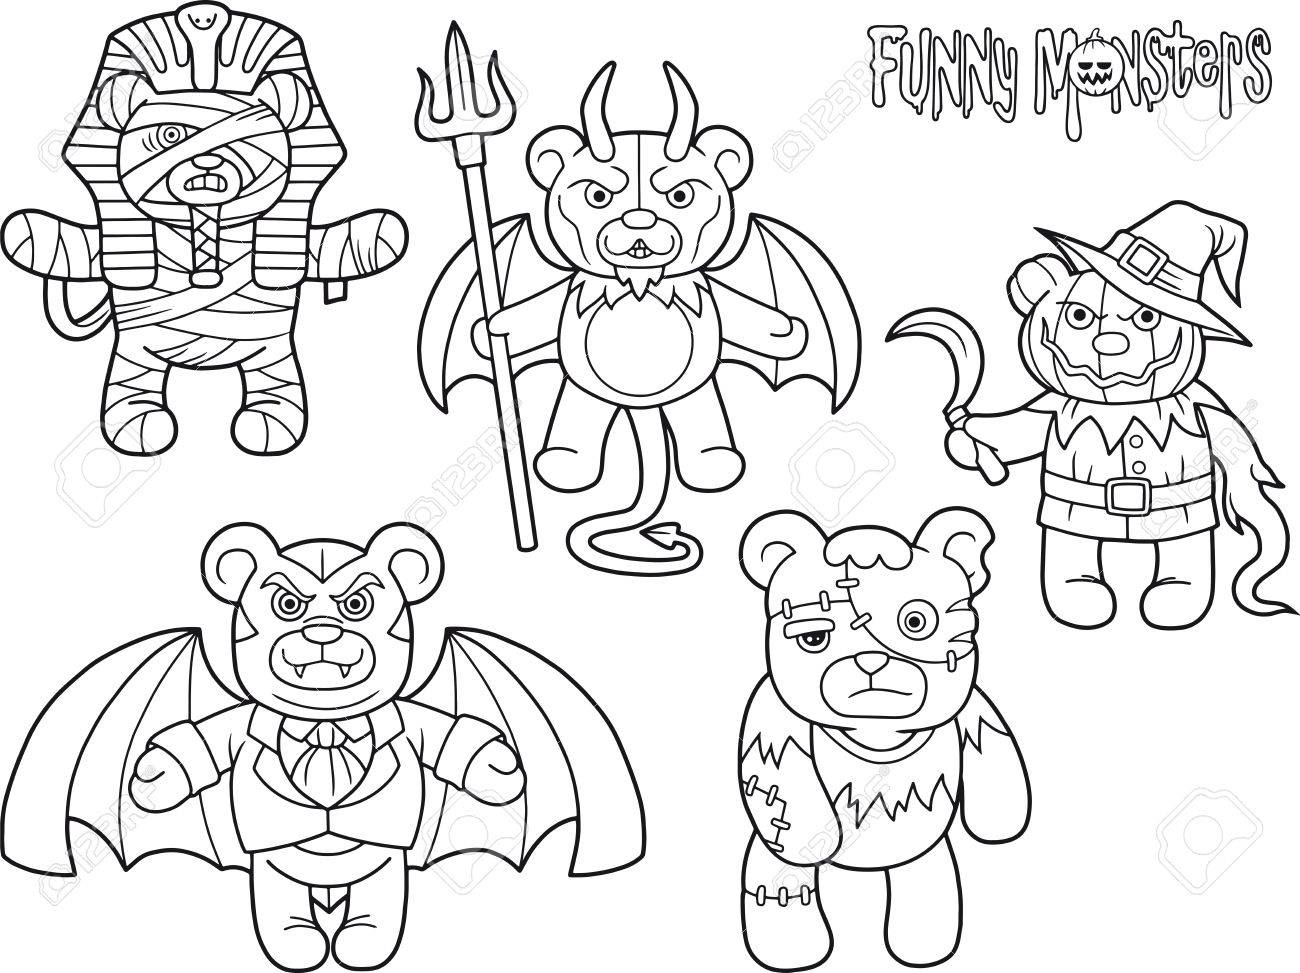 Cartoon Teddy Bears Monsters Set Of Drawings Royalty Free Cliparts Vectors And Stock Illustration Image 74952119